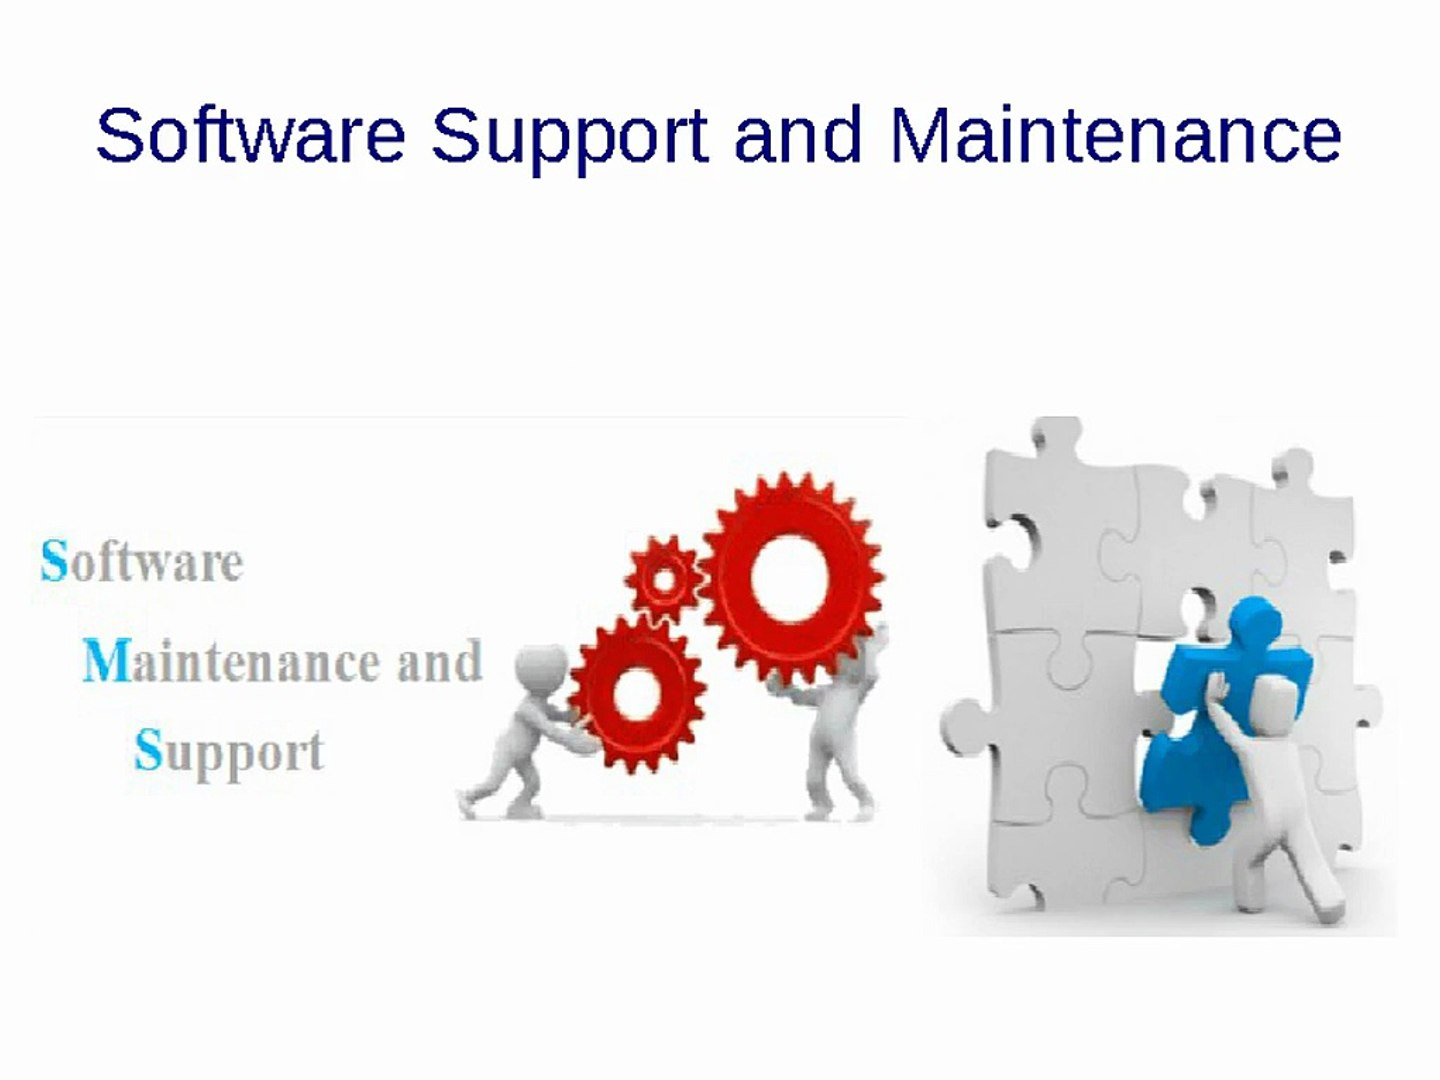 Sfotware Support and maintanance